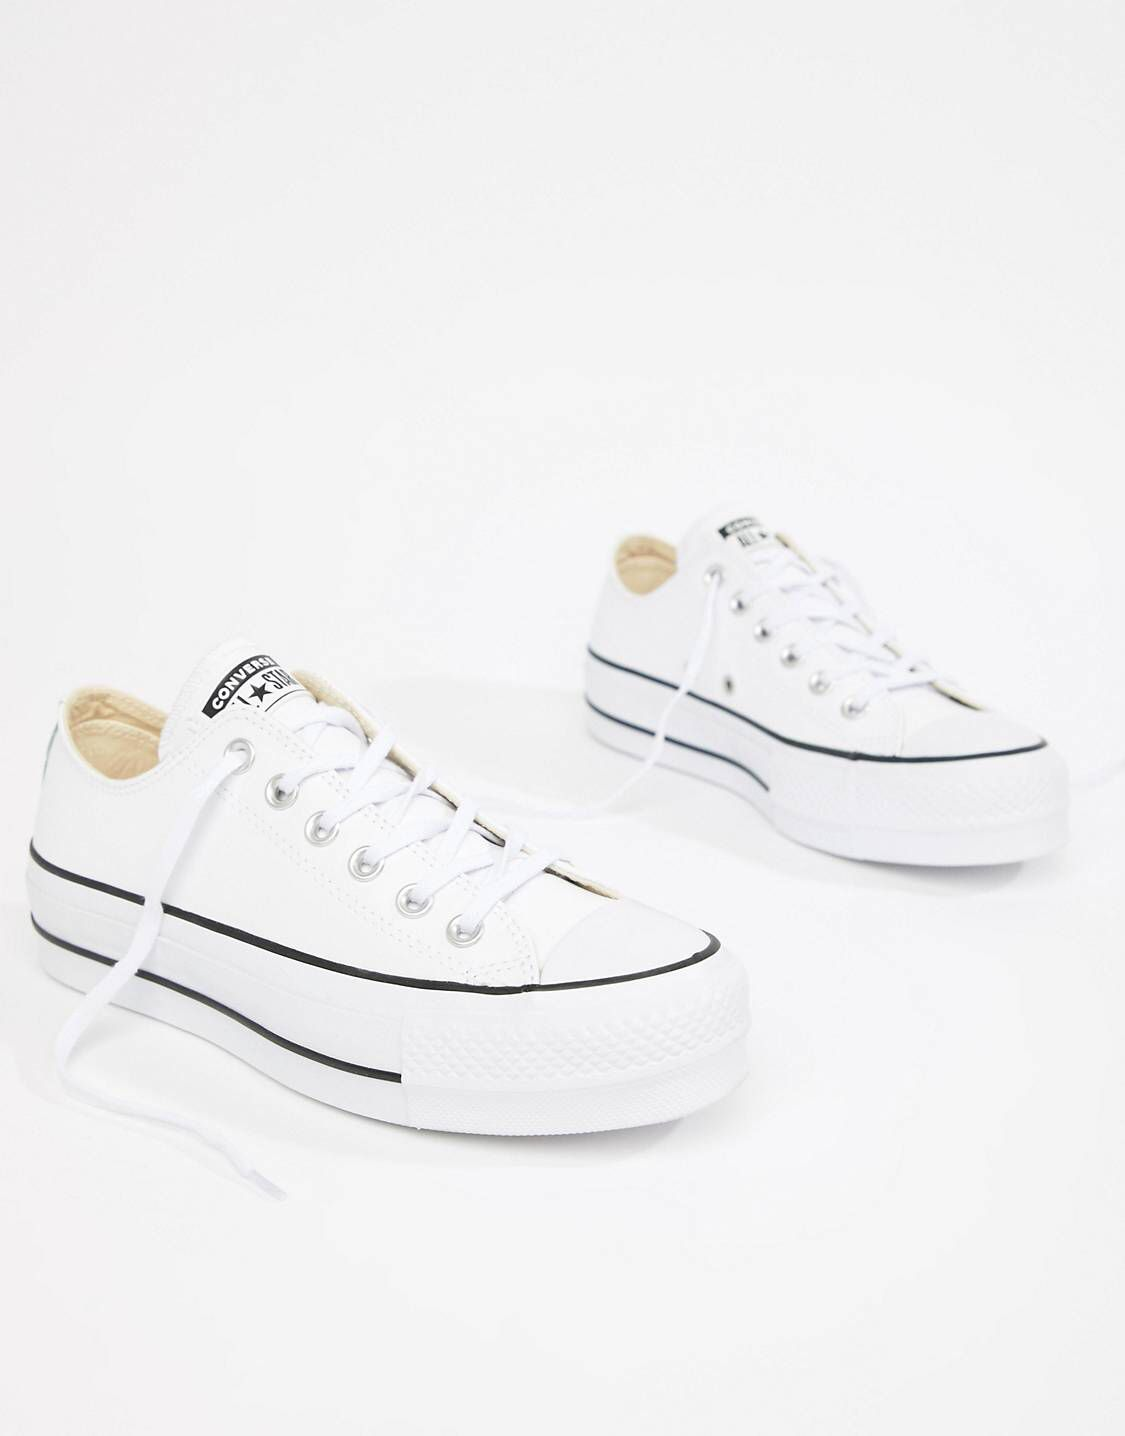 95a9c62a7405 Converse Chuck Taylor All Star leather platform low sneakers in ...